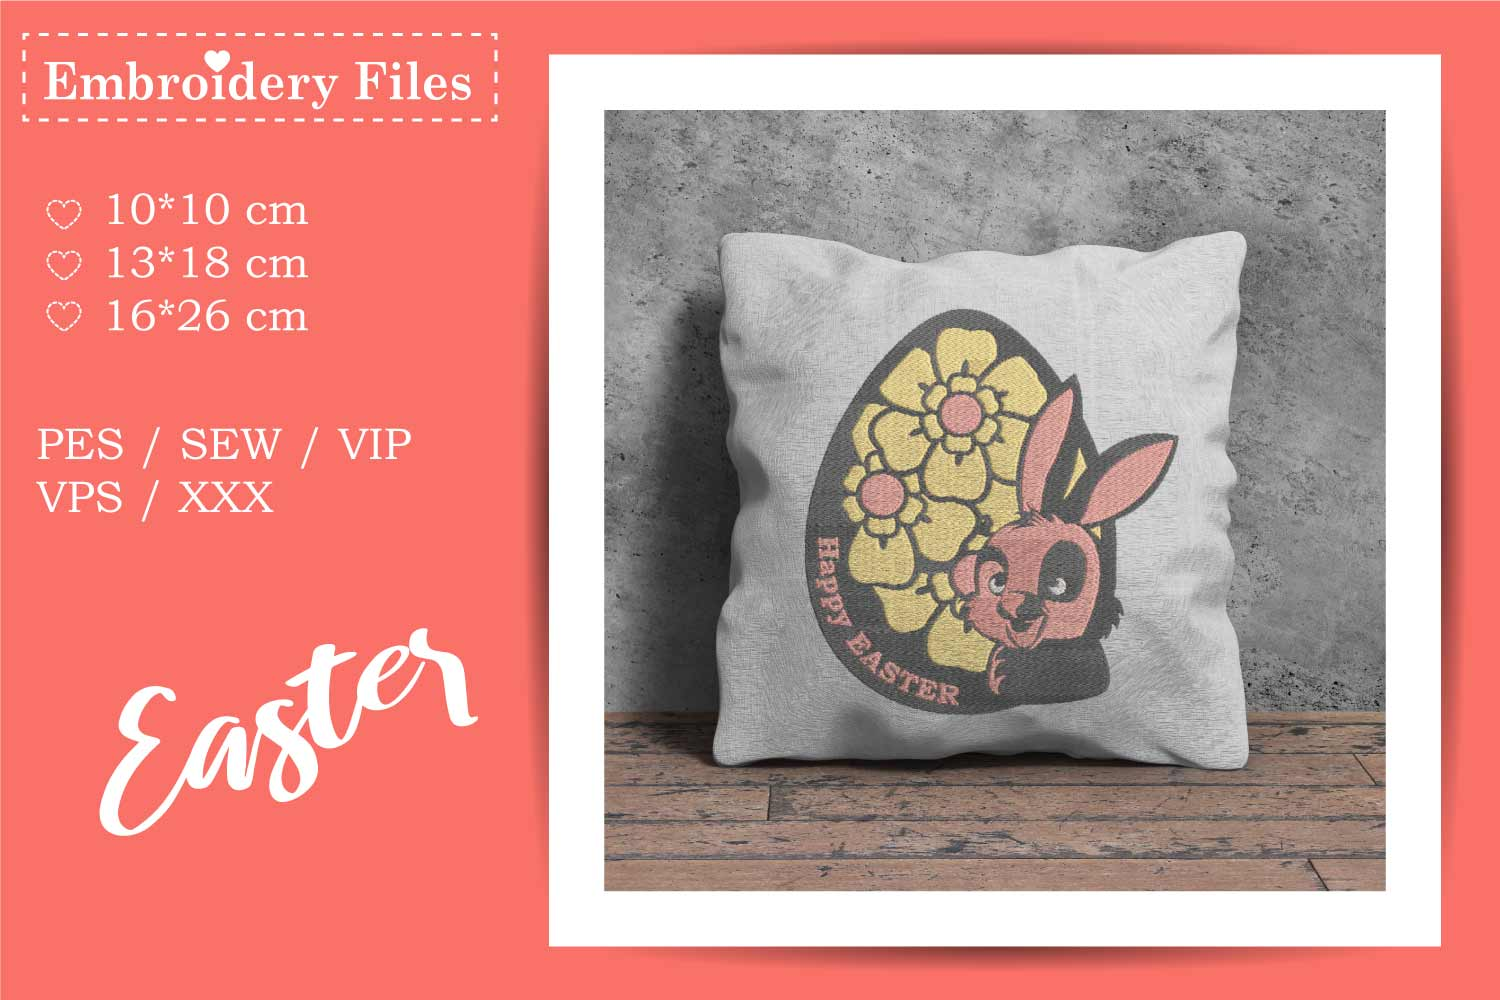 Cute Easter Bunny in an Egg - Embroidery File example image 2